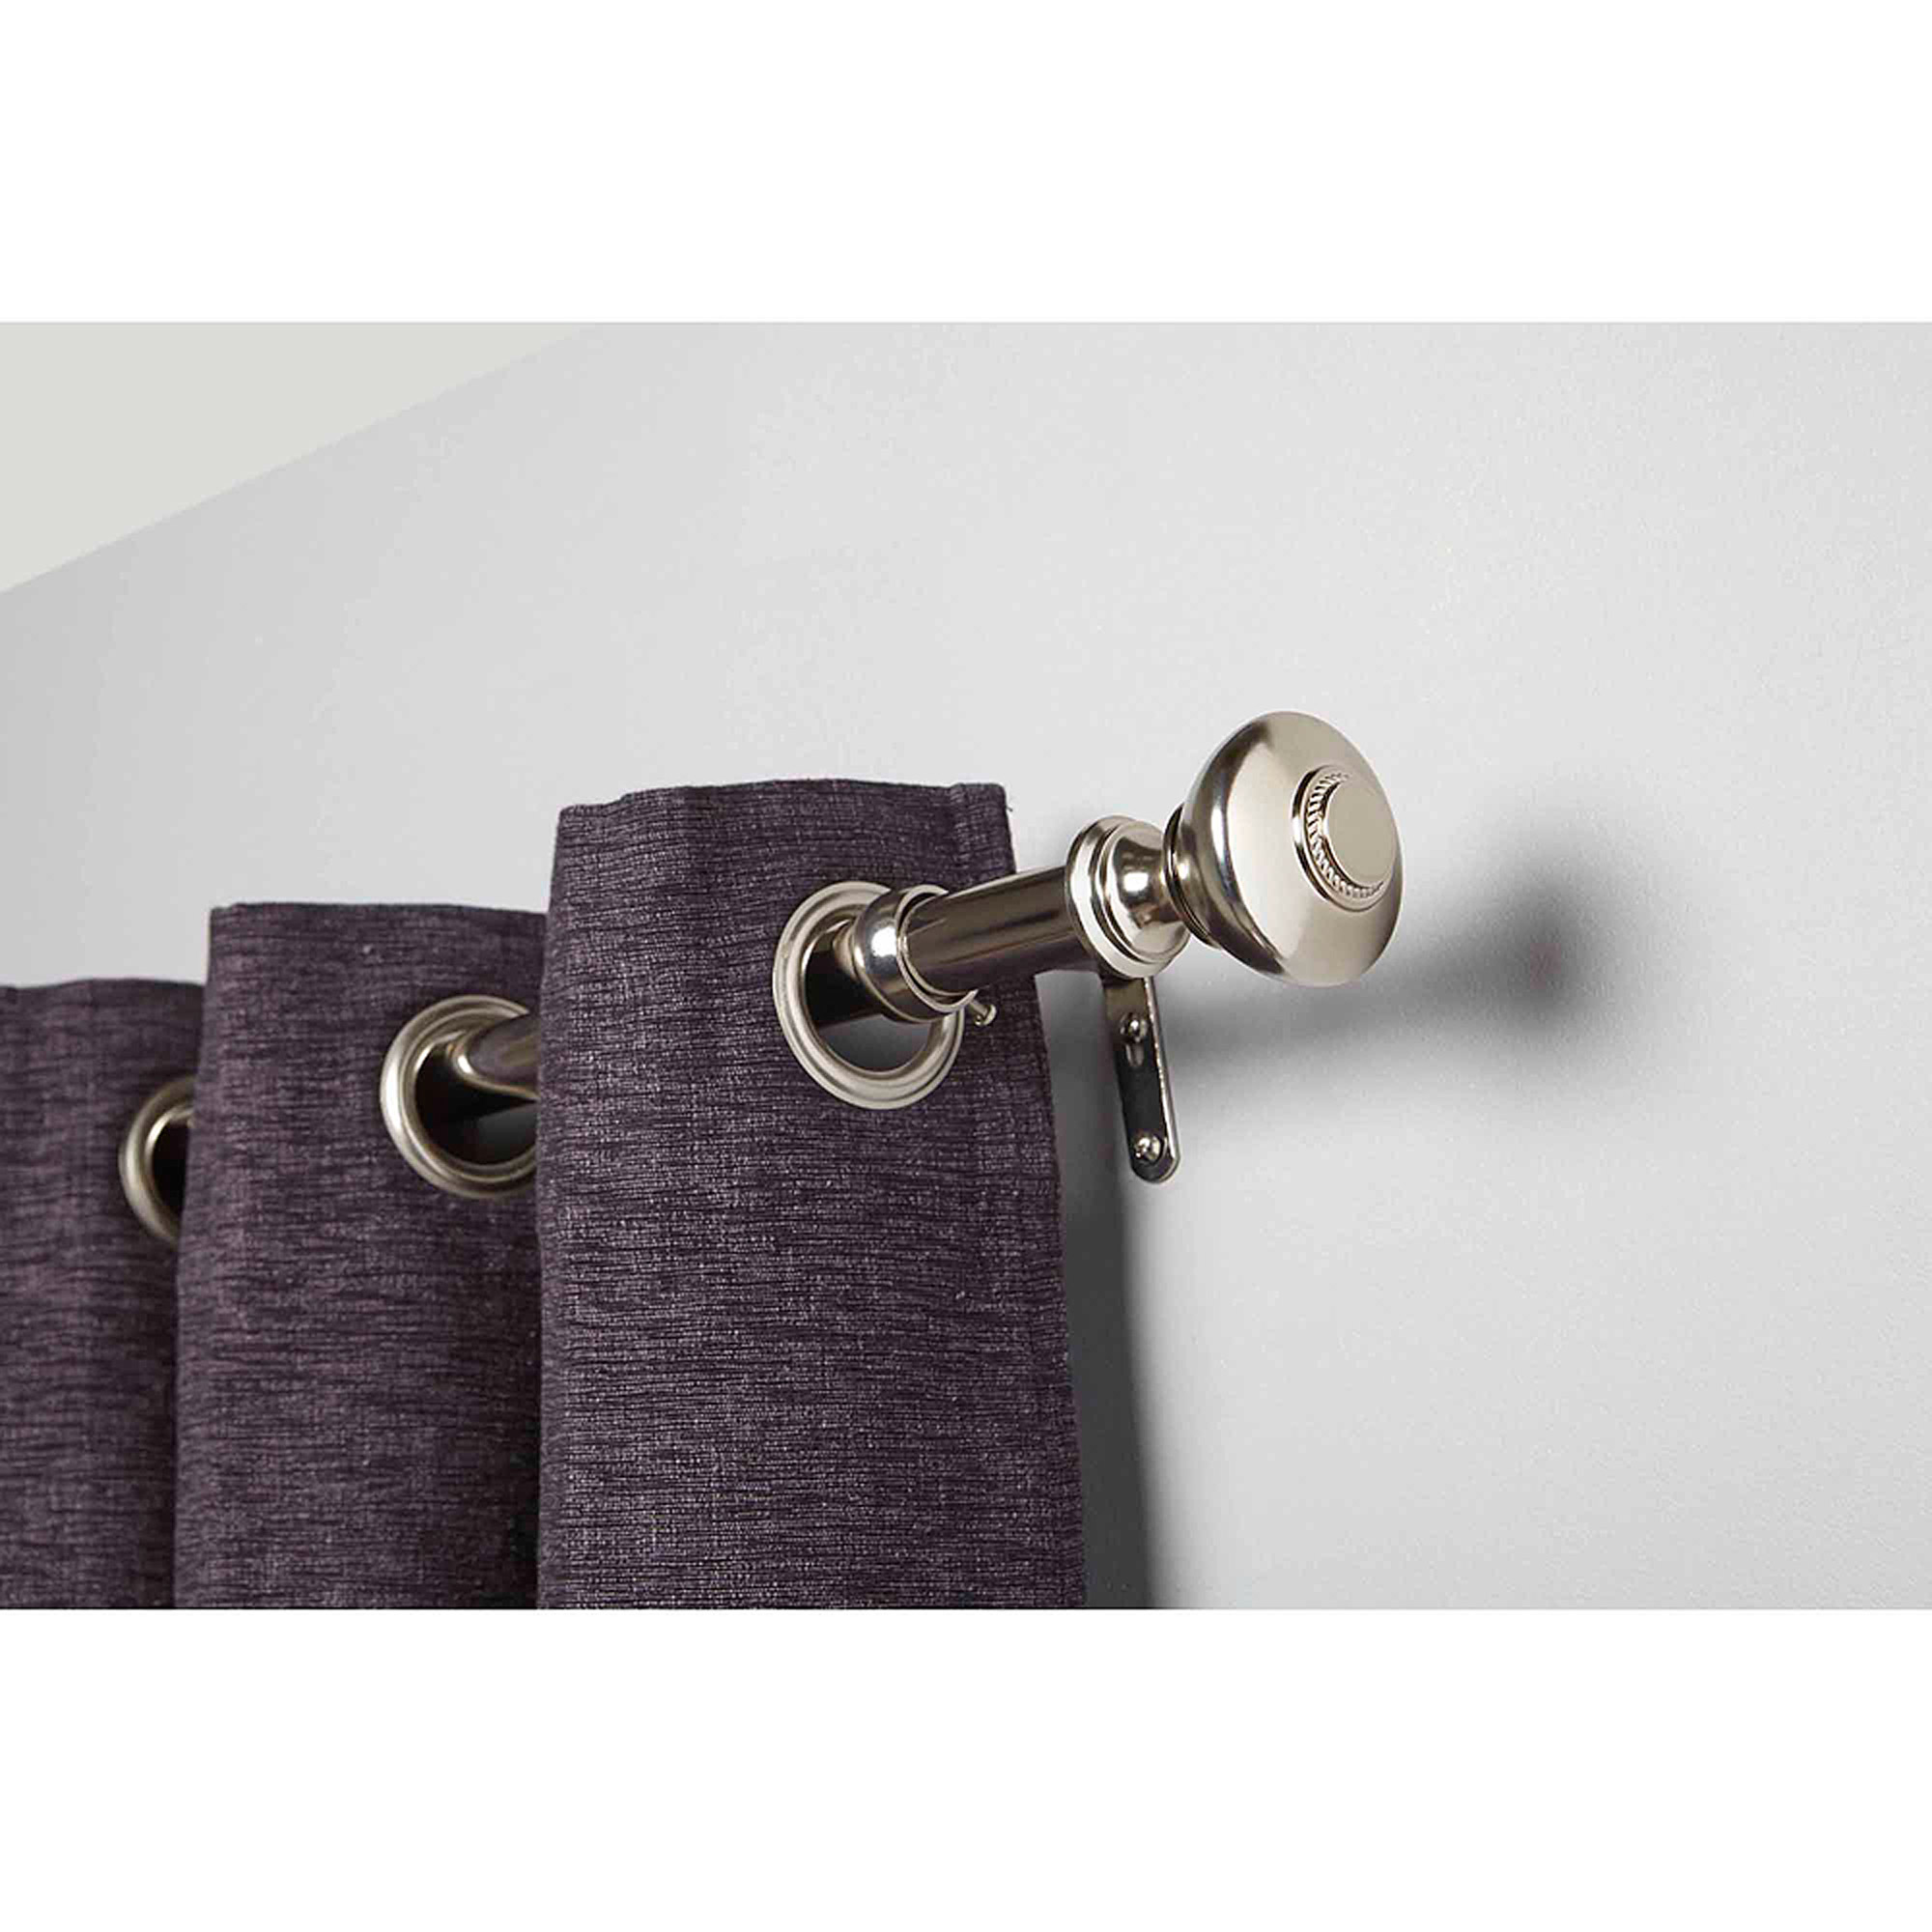 Better Homes and Gardens Silver Knob Curtain Rod Set Nickel